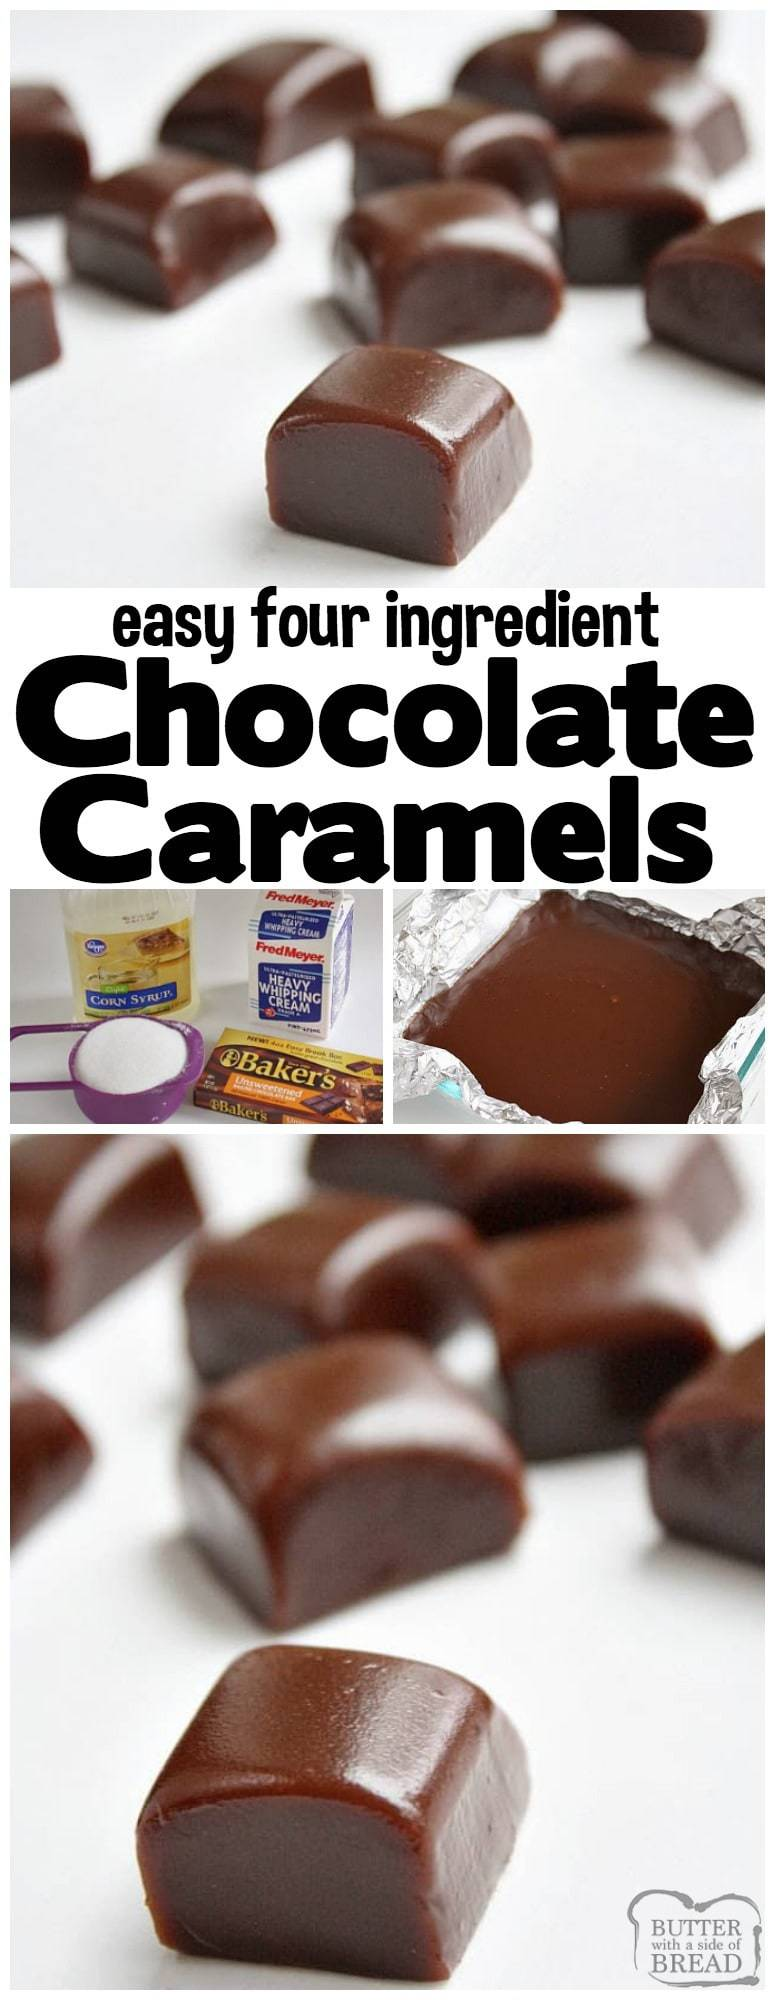 Chocolate Caramels are soft, chewy 4-ingredient homemade caramels with the amazing addition of chocolate! Perfect holiday treats that are delicious & easy to make. Incredible #homemade #caramel #recipe with #chocolate from Butter With A Side of Bread #Christmas #candy #holidays